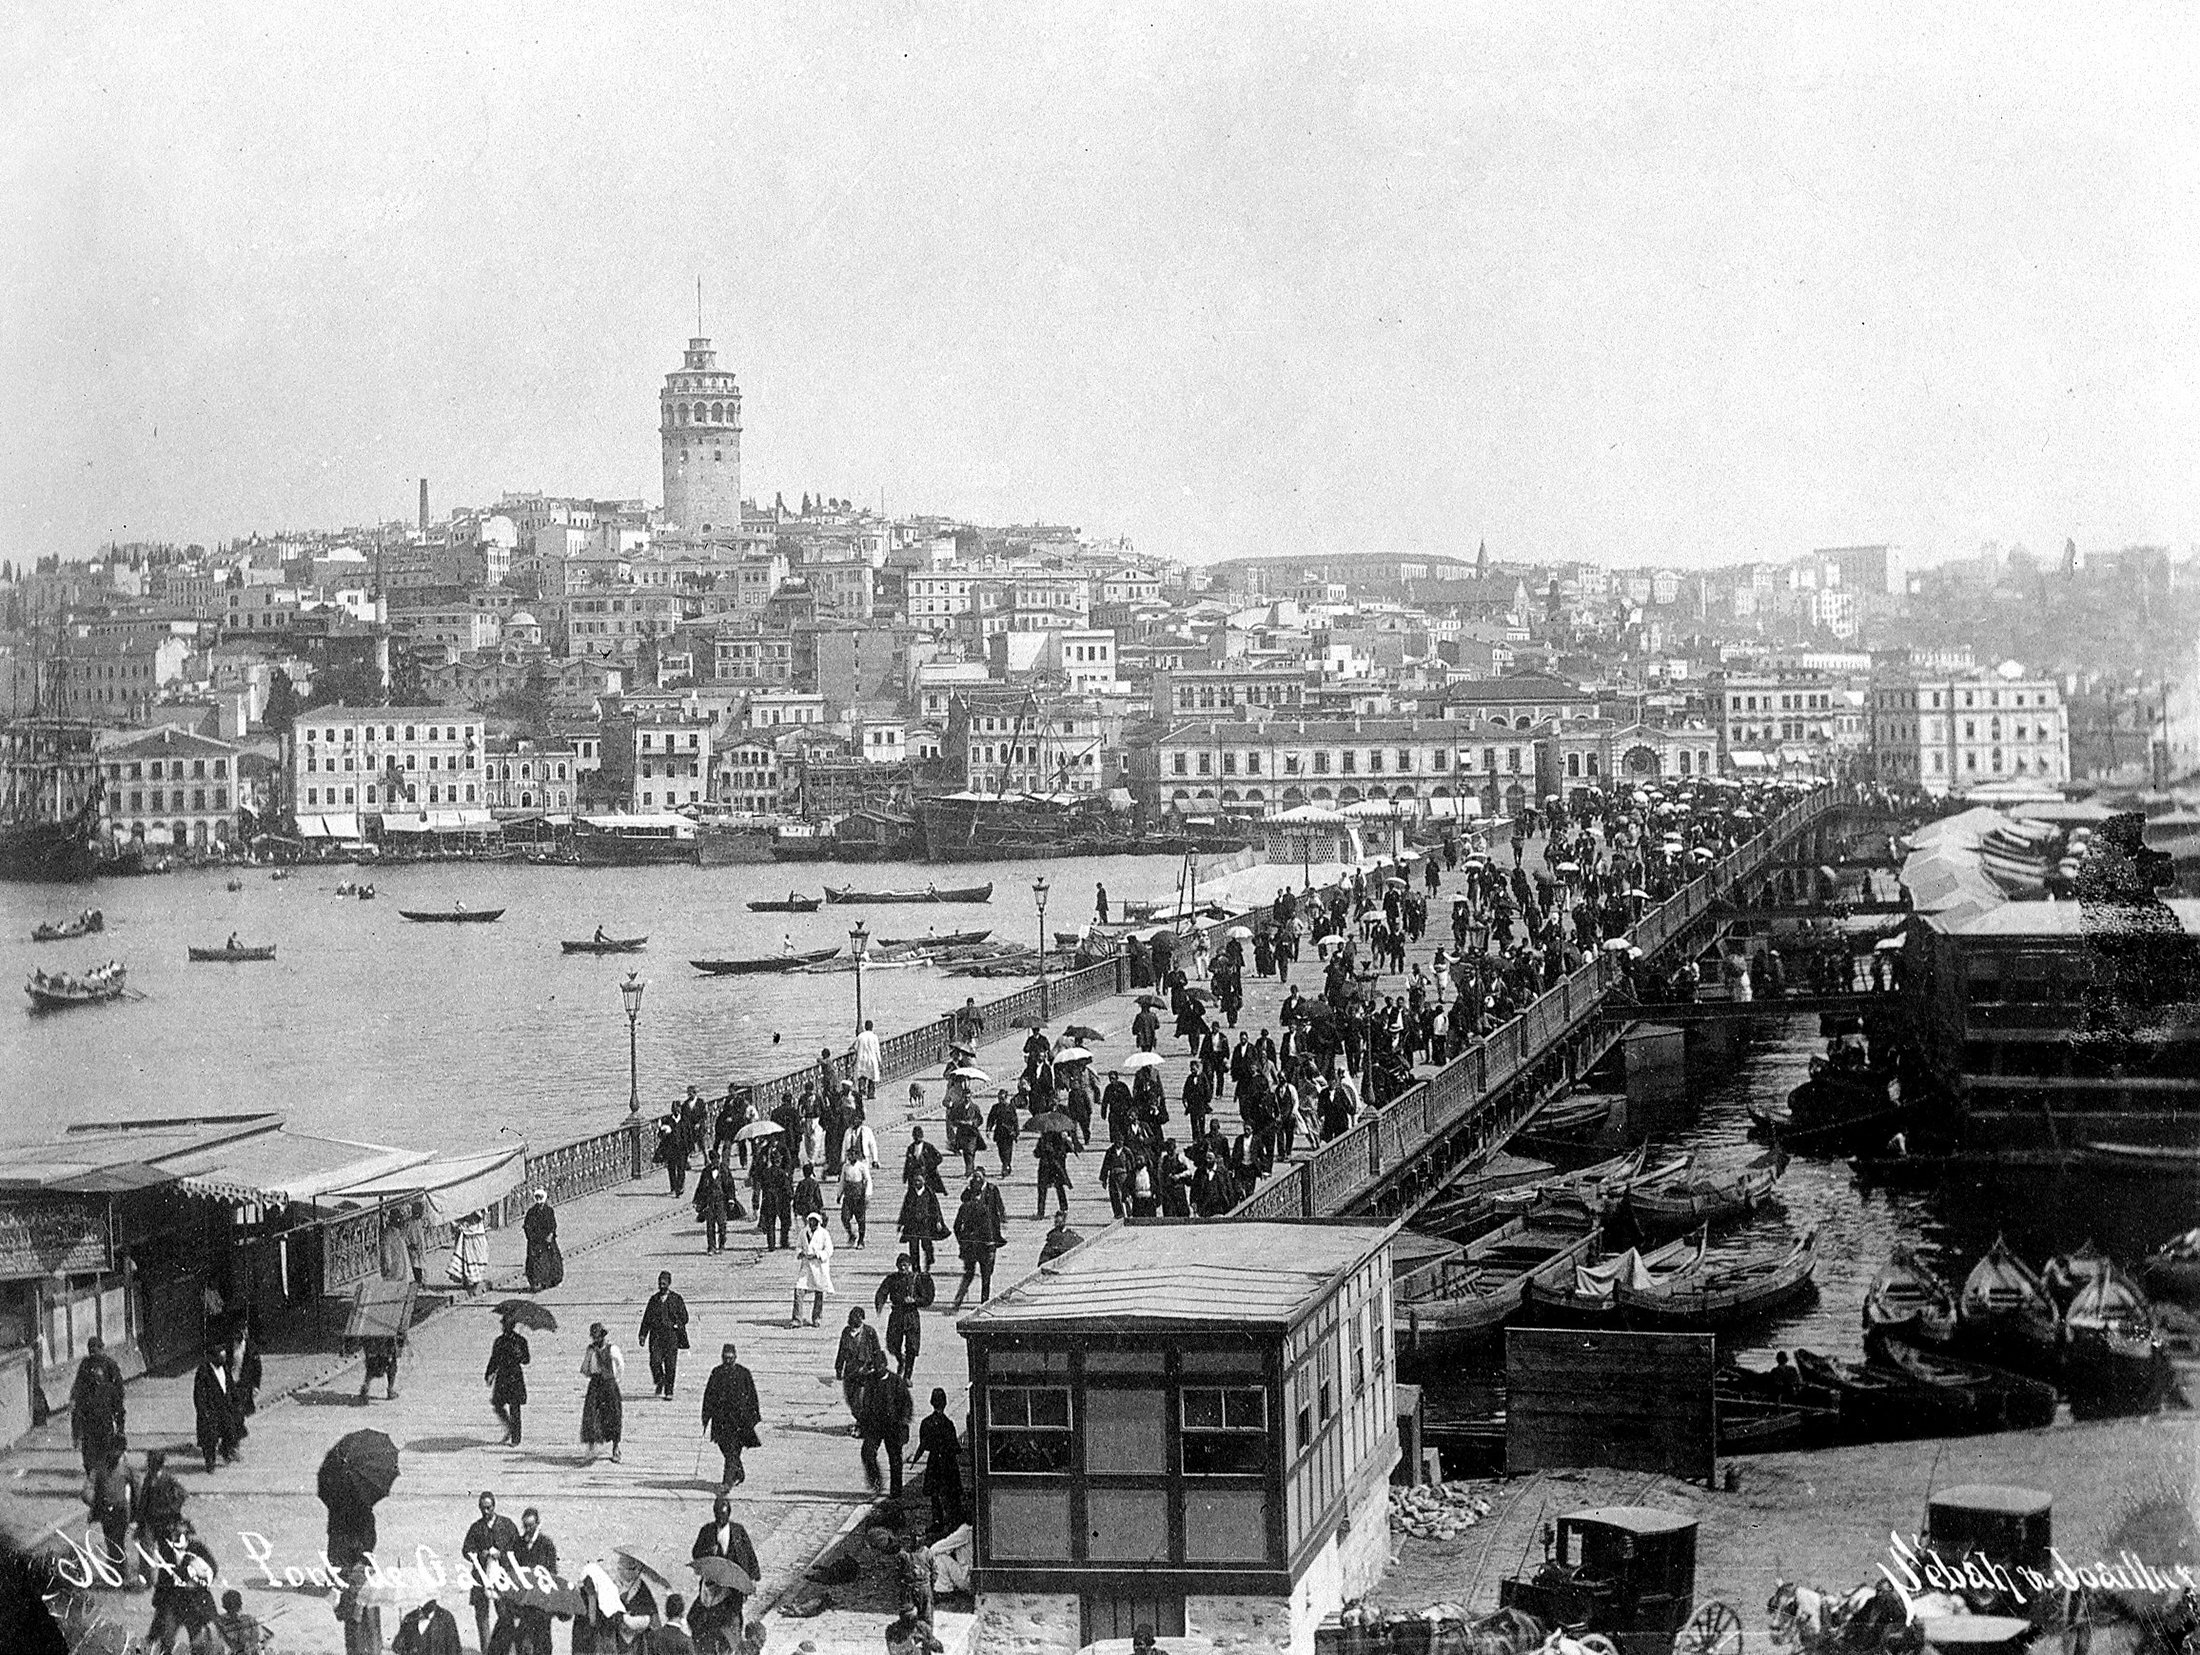 The literary works of Hagop Baronian offer an insight into everyday life in 19th-century Istanbul. (Getty Images)